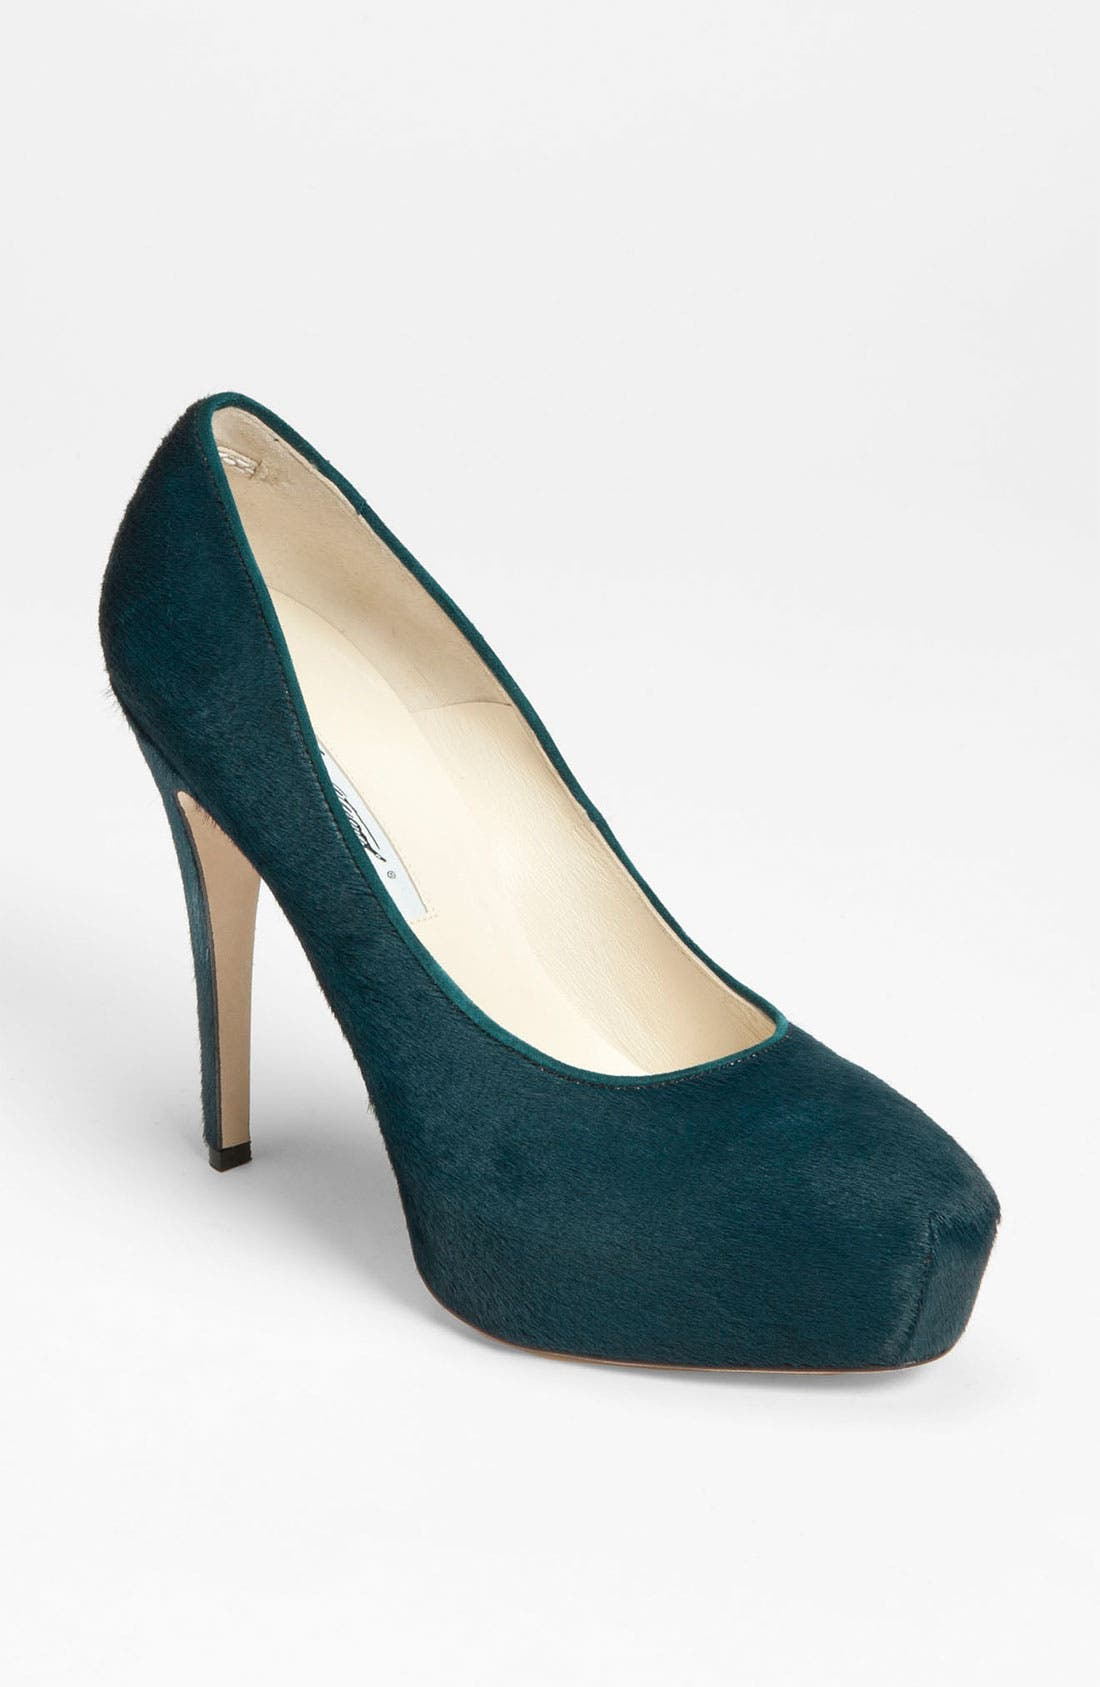 Alternate Image 1 Selected - Brian Atwood 'Maniac' Pump